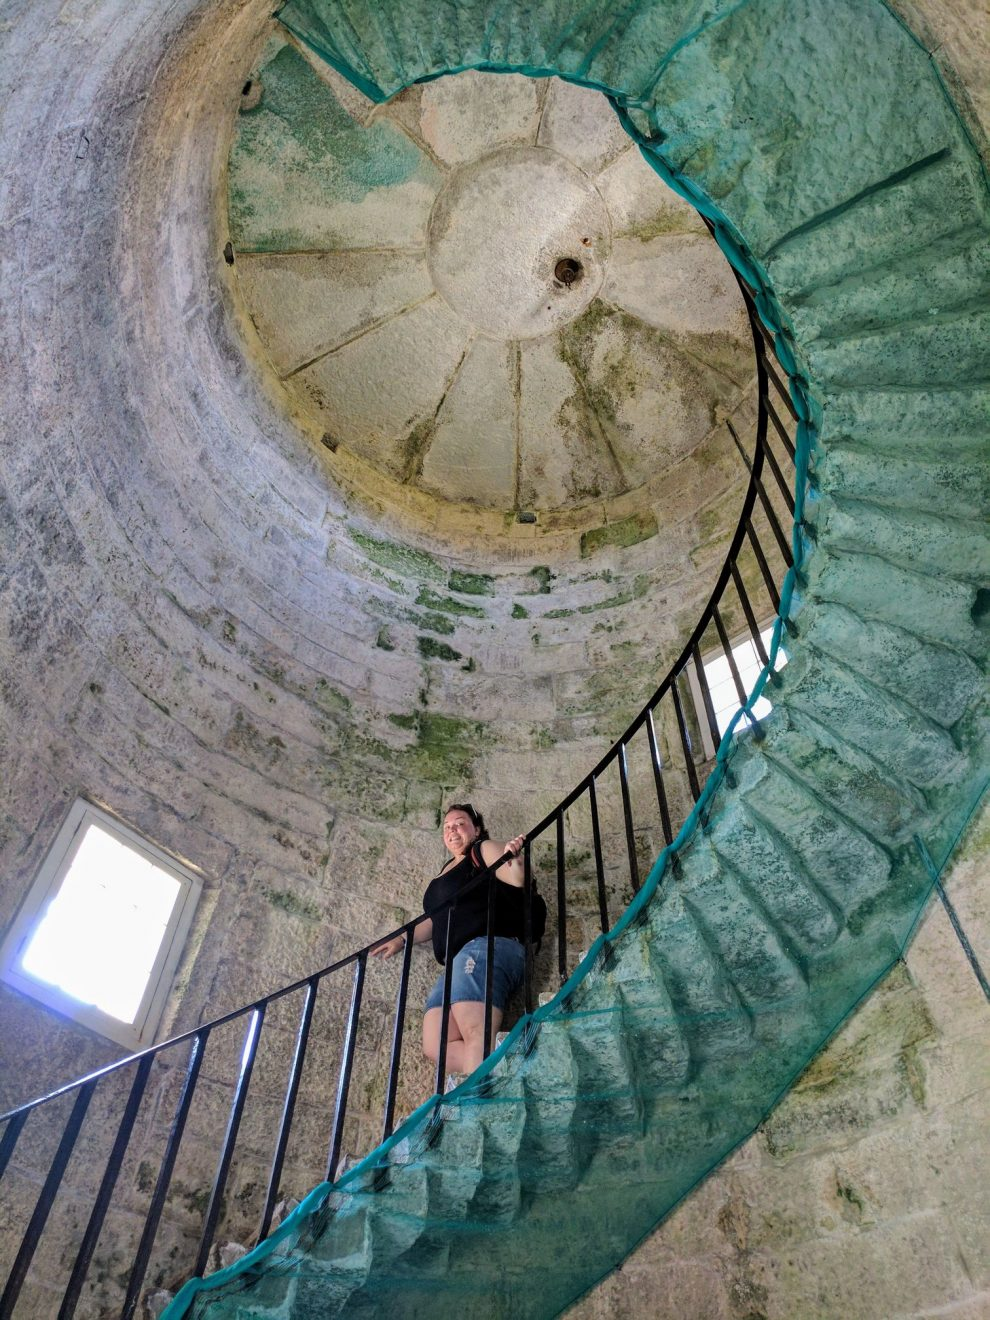 Alex climbing down the spiral staircase in Old Light